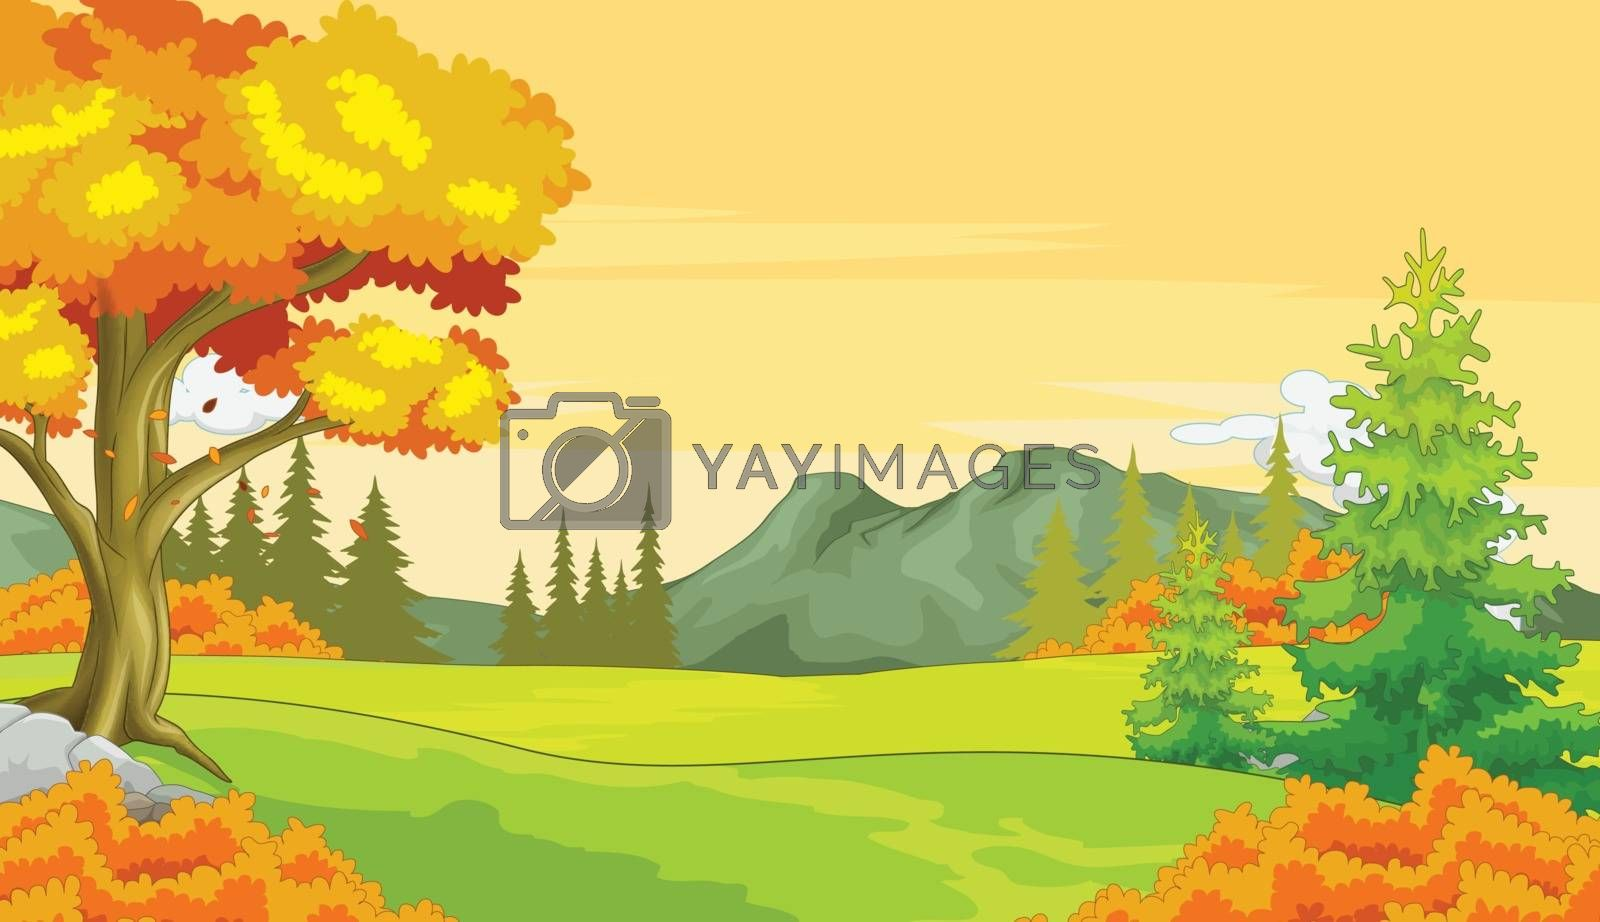 Royalty free image of Autumn Forest View Background by sujono